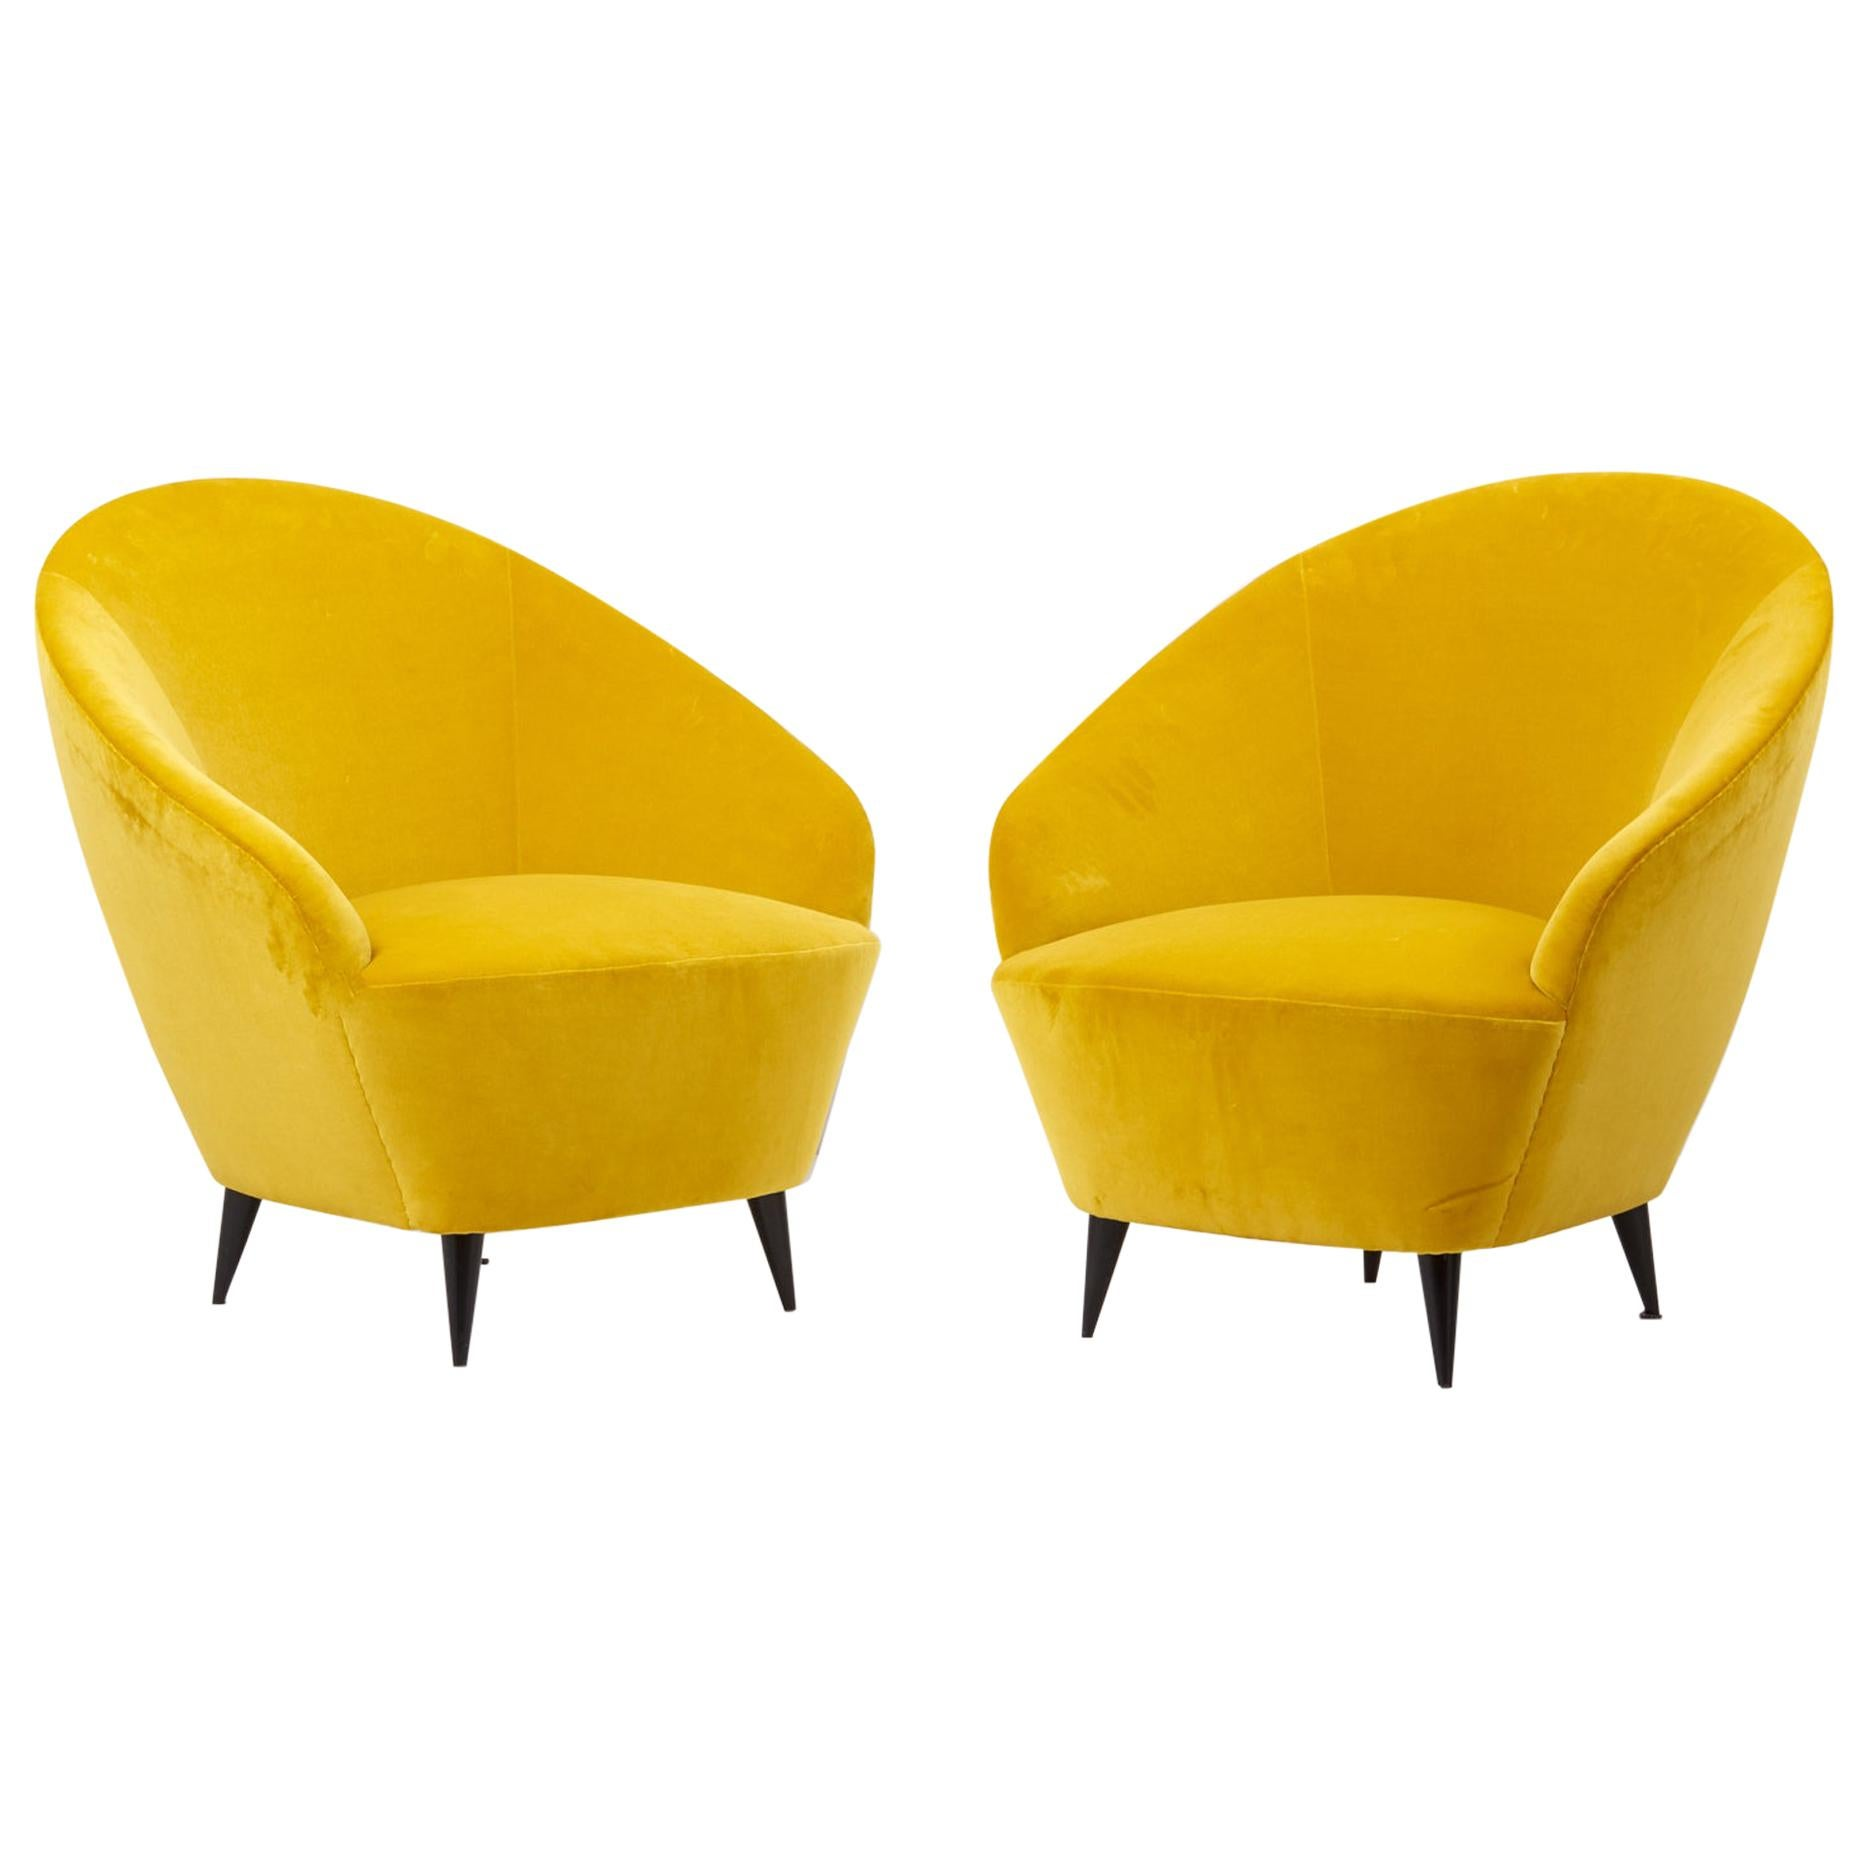 Pair of Lounge Chairs in New Cotton Velvet, Italy, 1950s